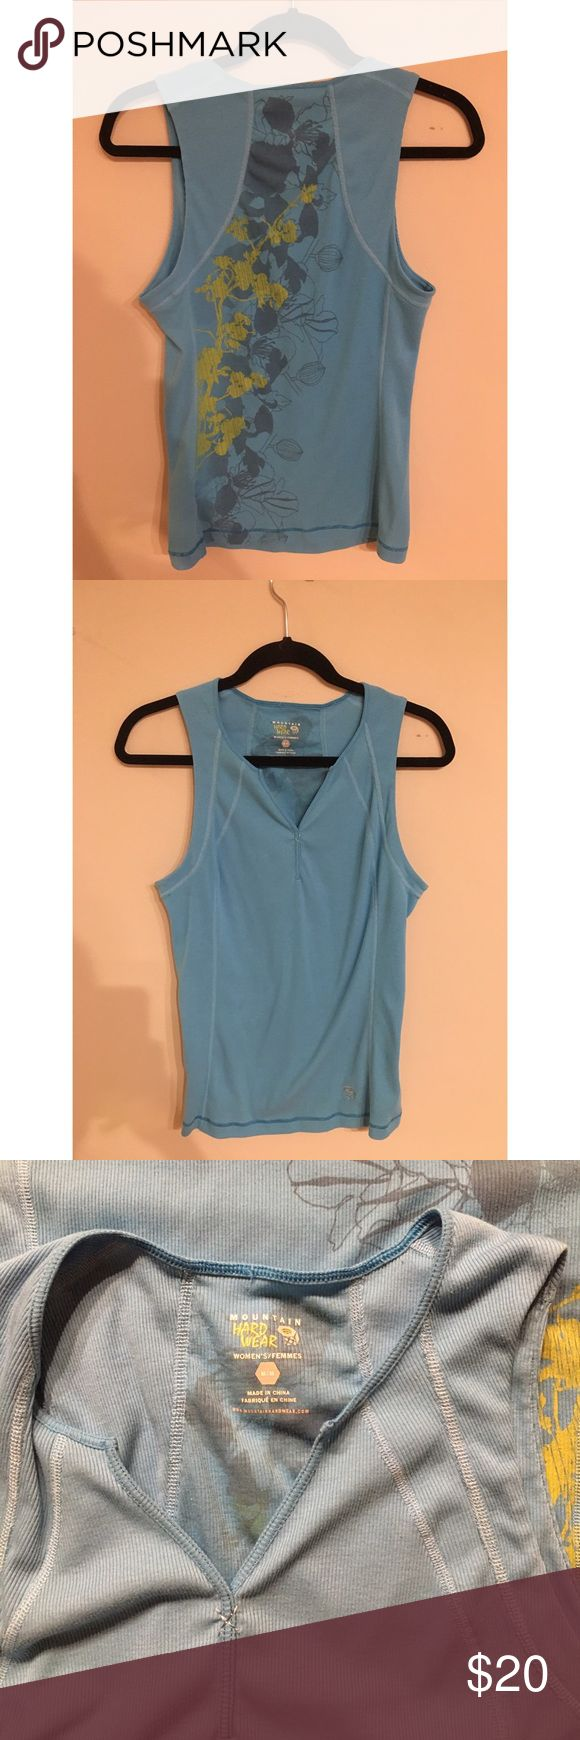 Mountain Hard Wear Gently used mountain hard ware blue tank - women's size medium Mountain Hard Wear Tops Tank Tops